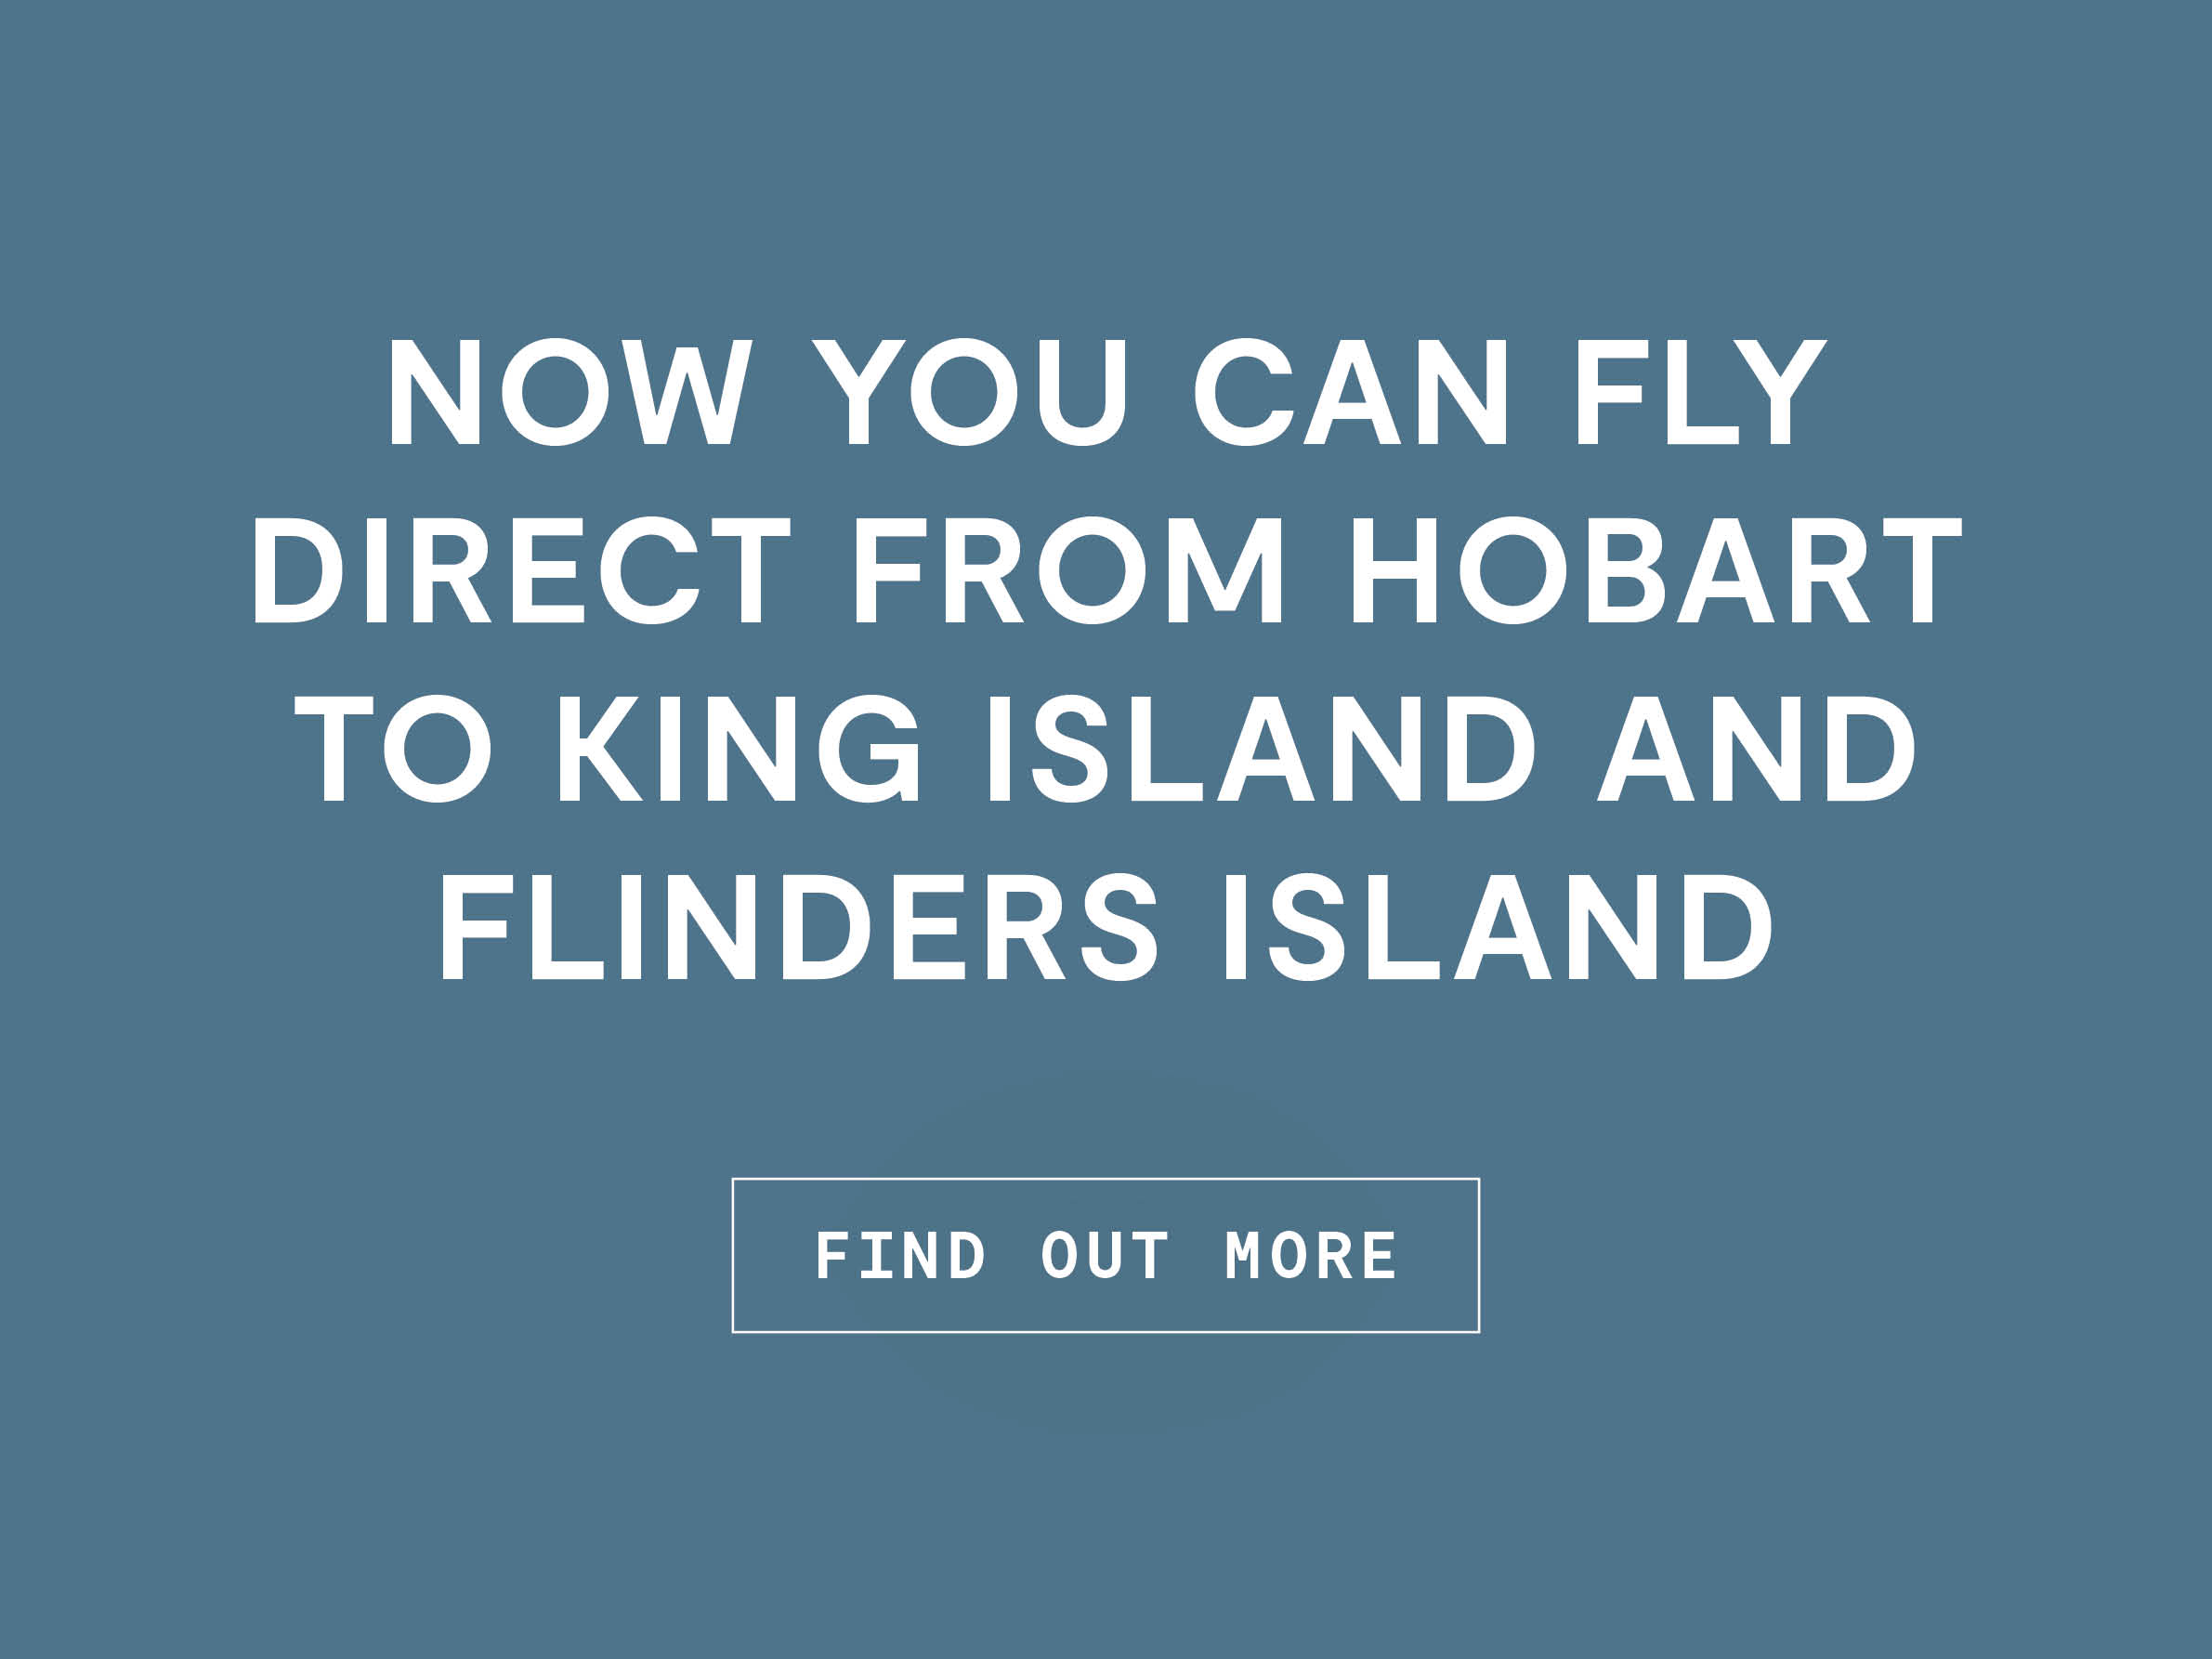 Now you can fly direct from Hobart to King Island and Flinders Island